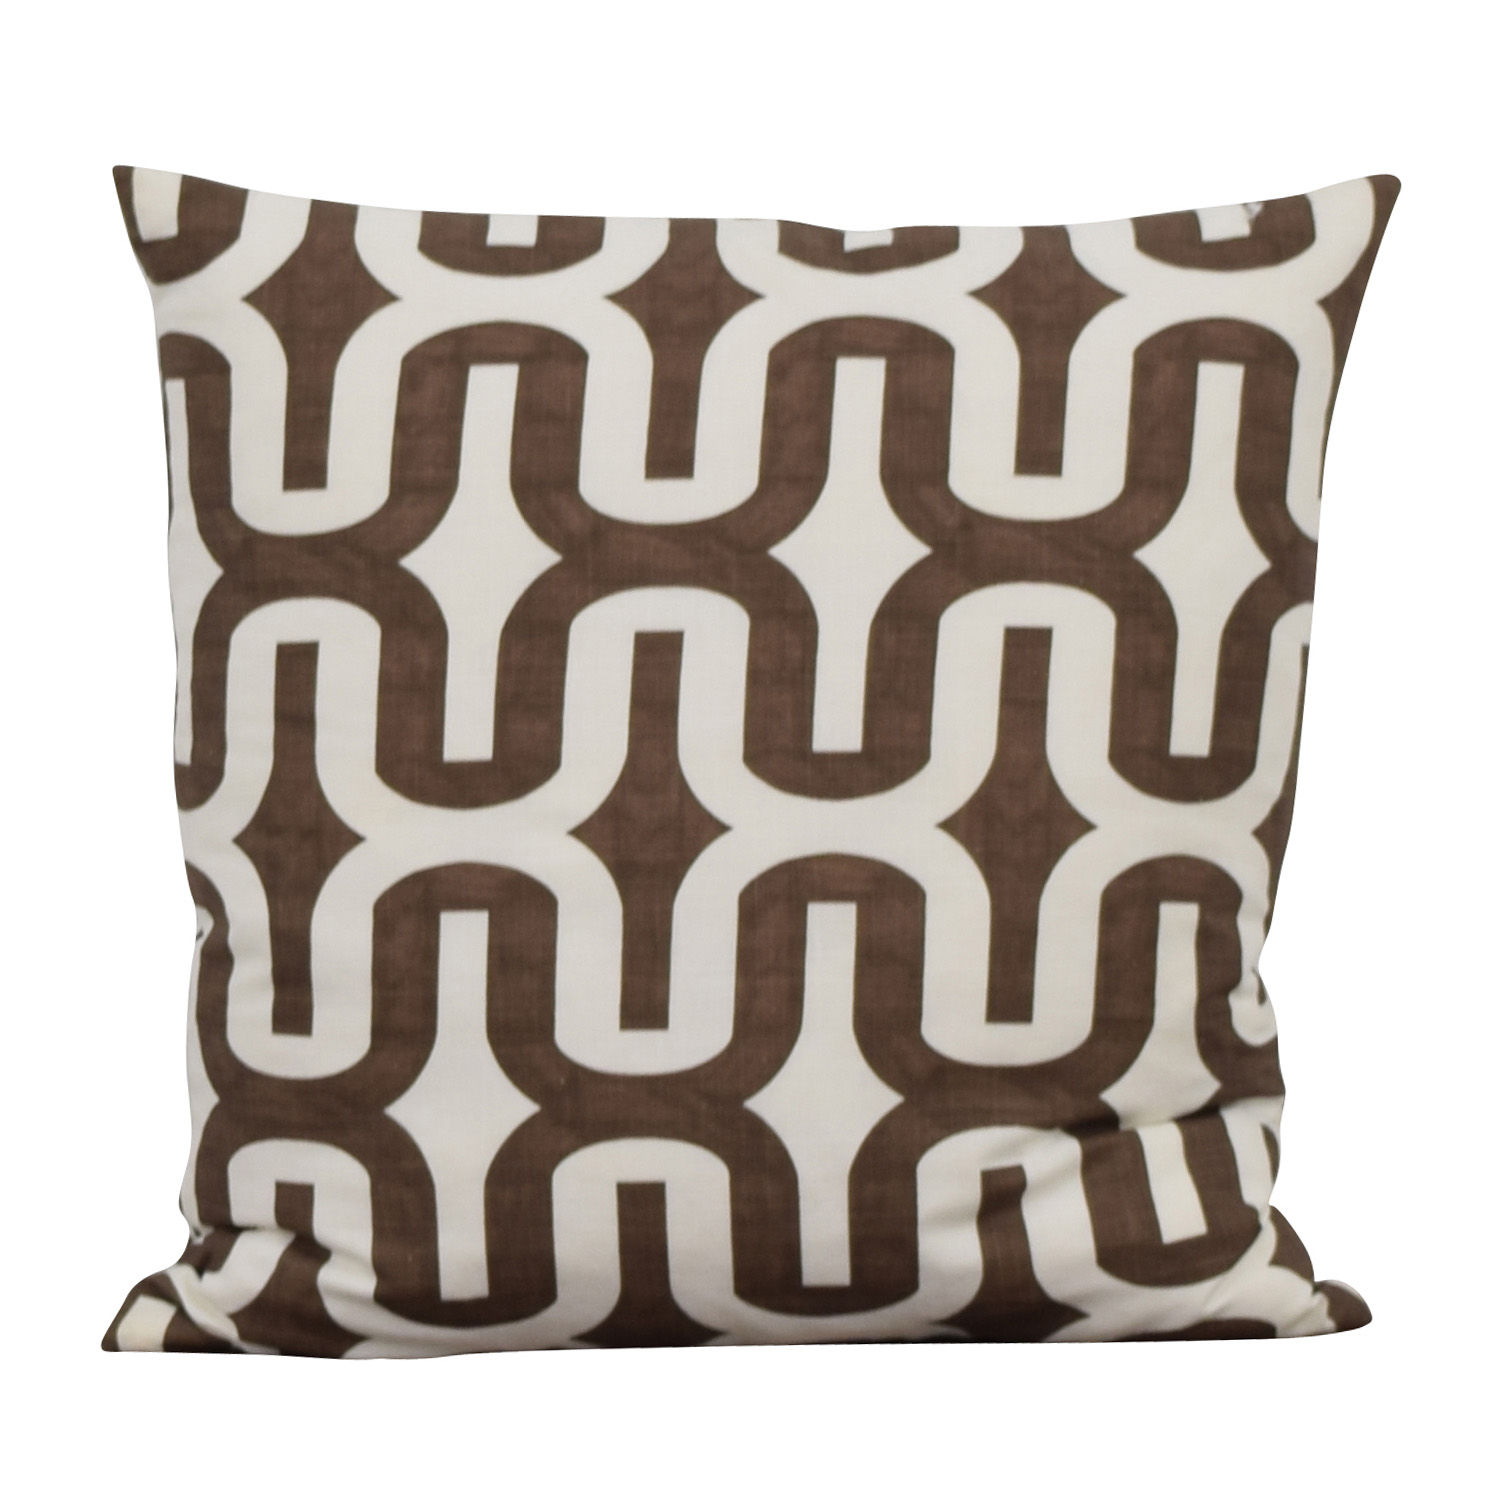 Brown and White Decorative Toss Pillows / Sofas